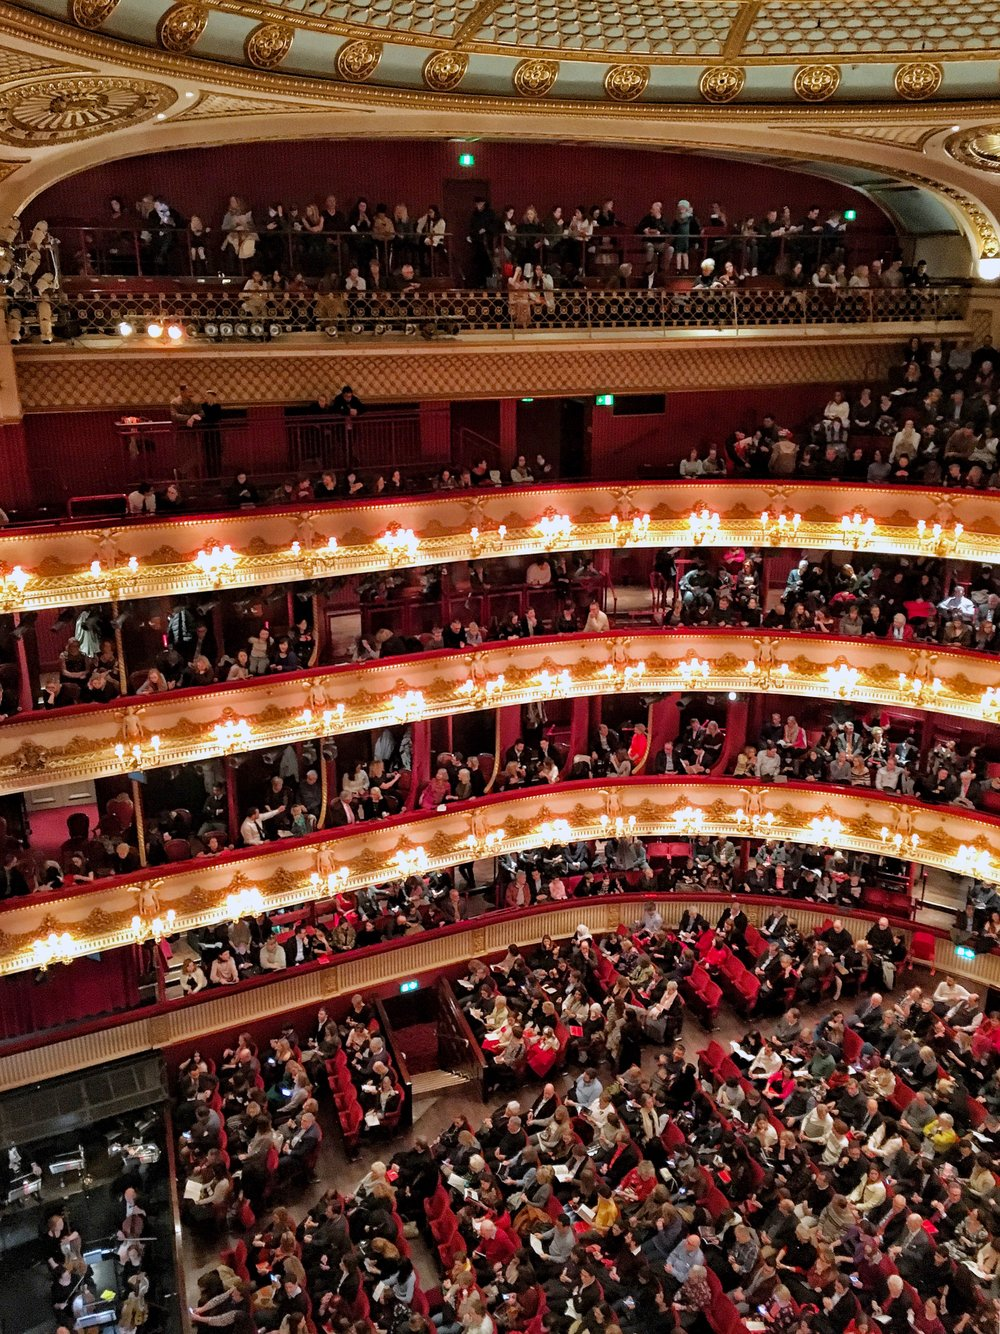 London Royal Opera House auditorium followthatbug eileen hsieh follow that bug UK ballet